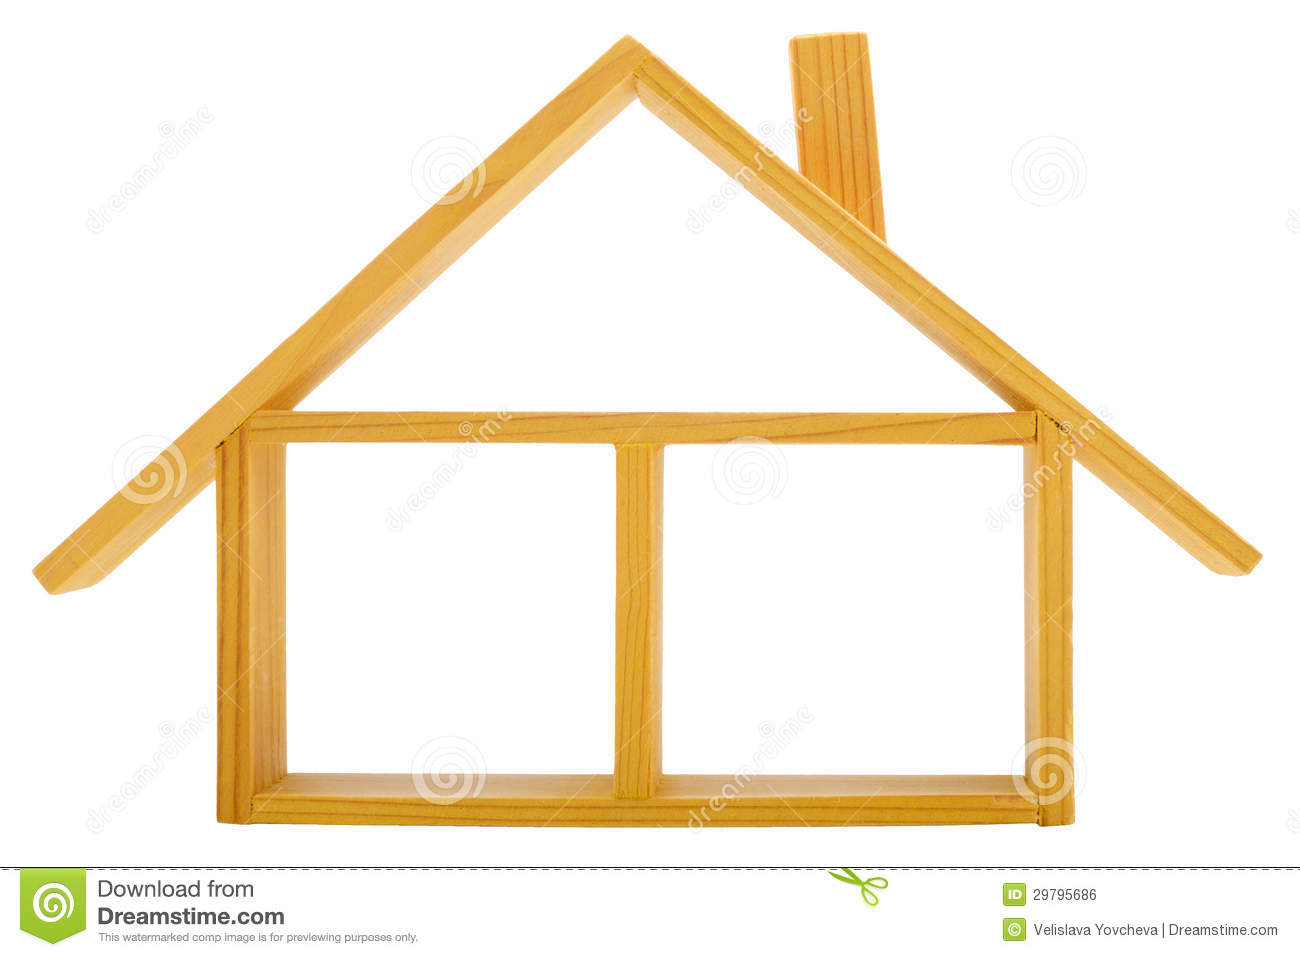 House roof view clipart.